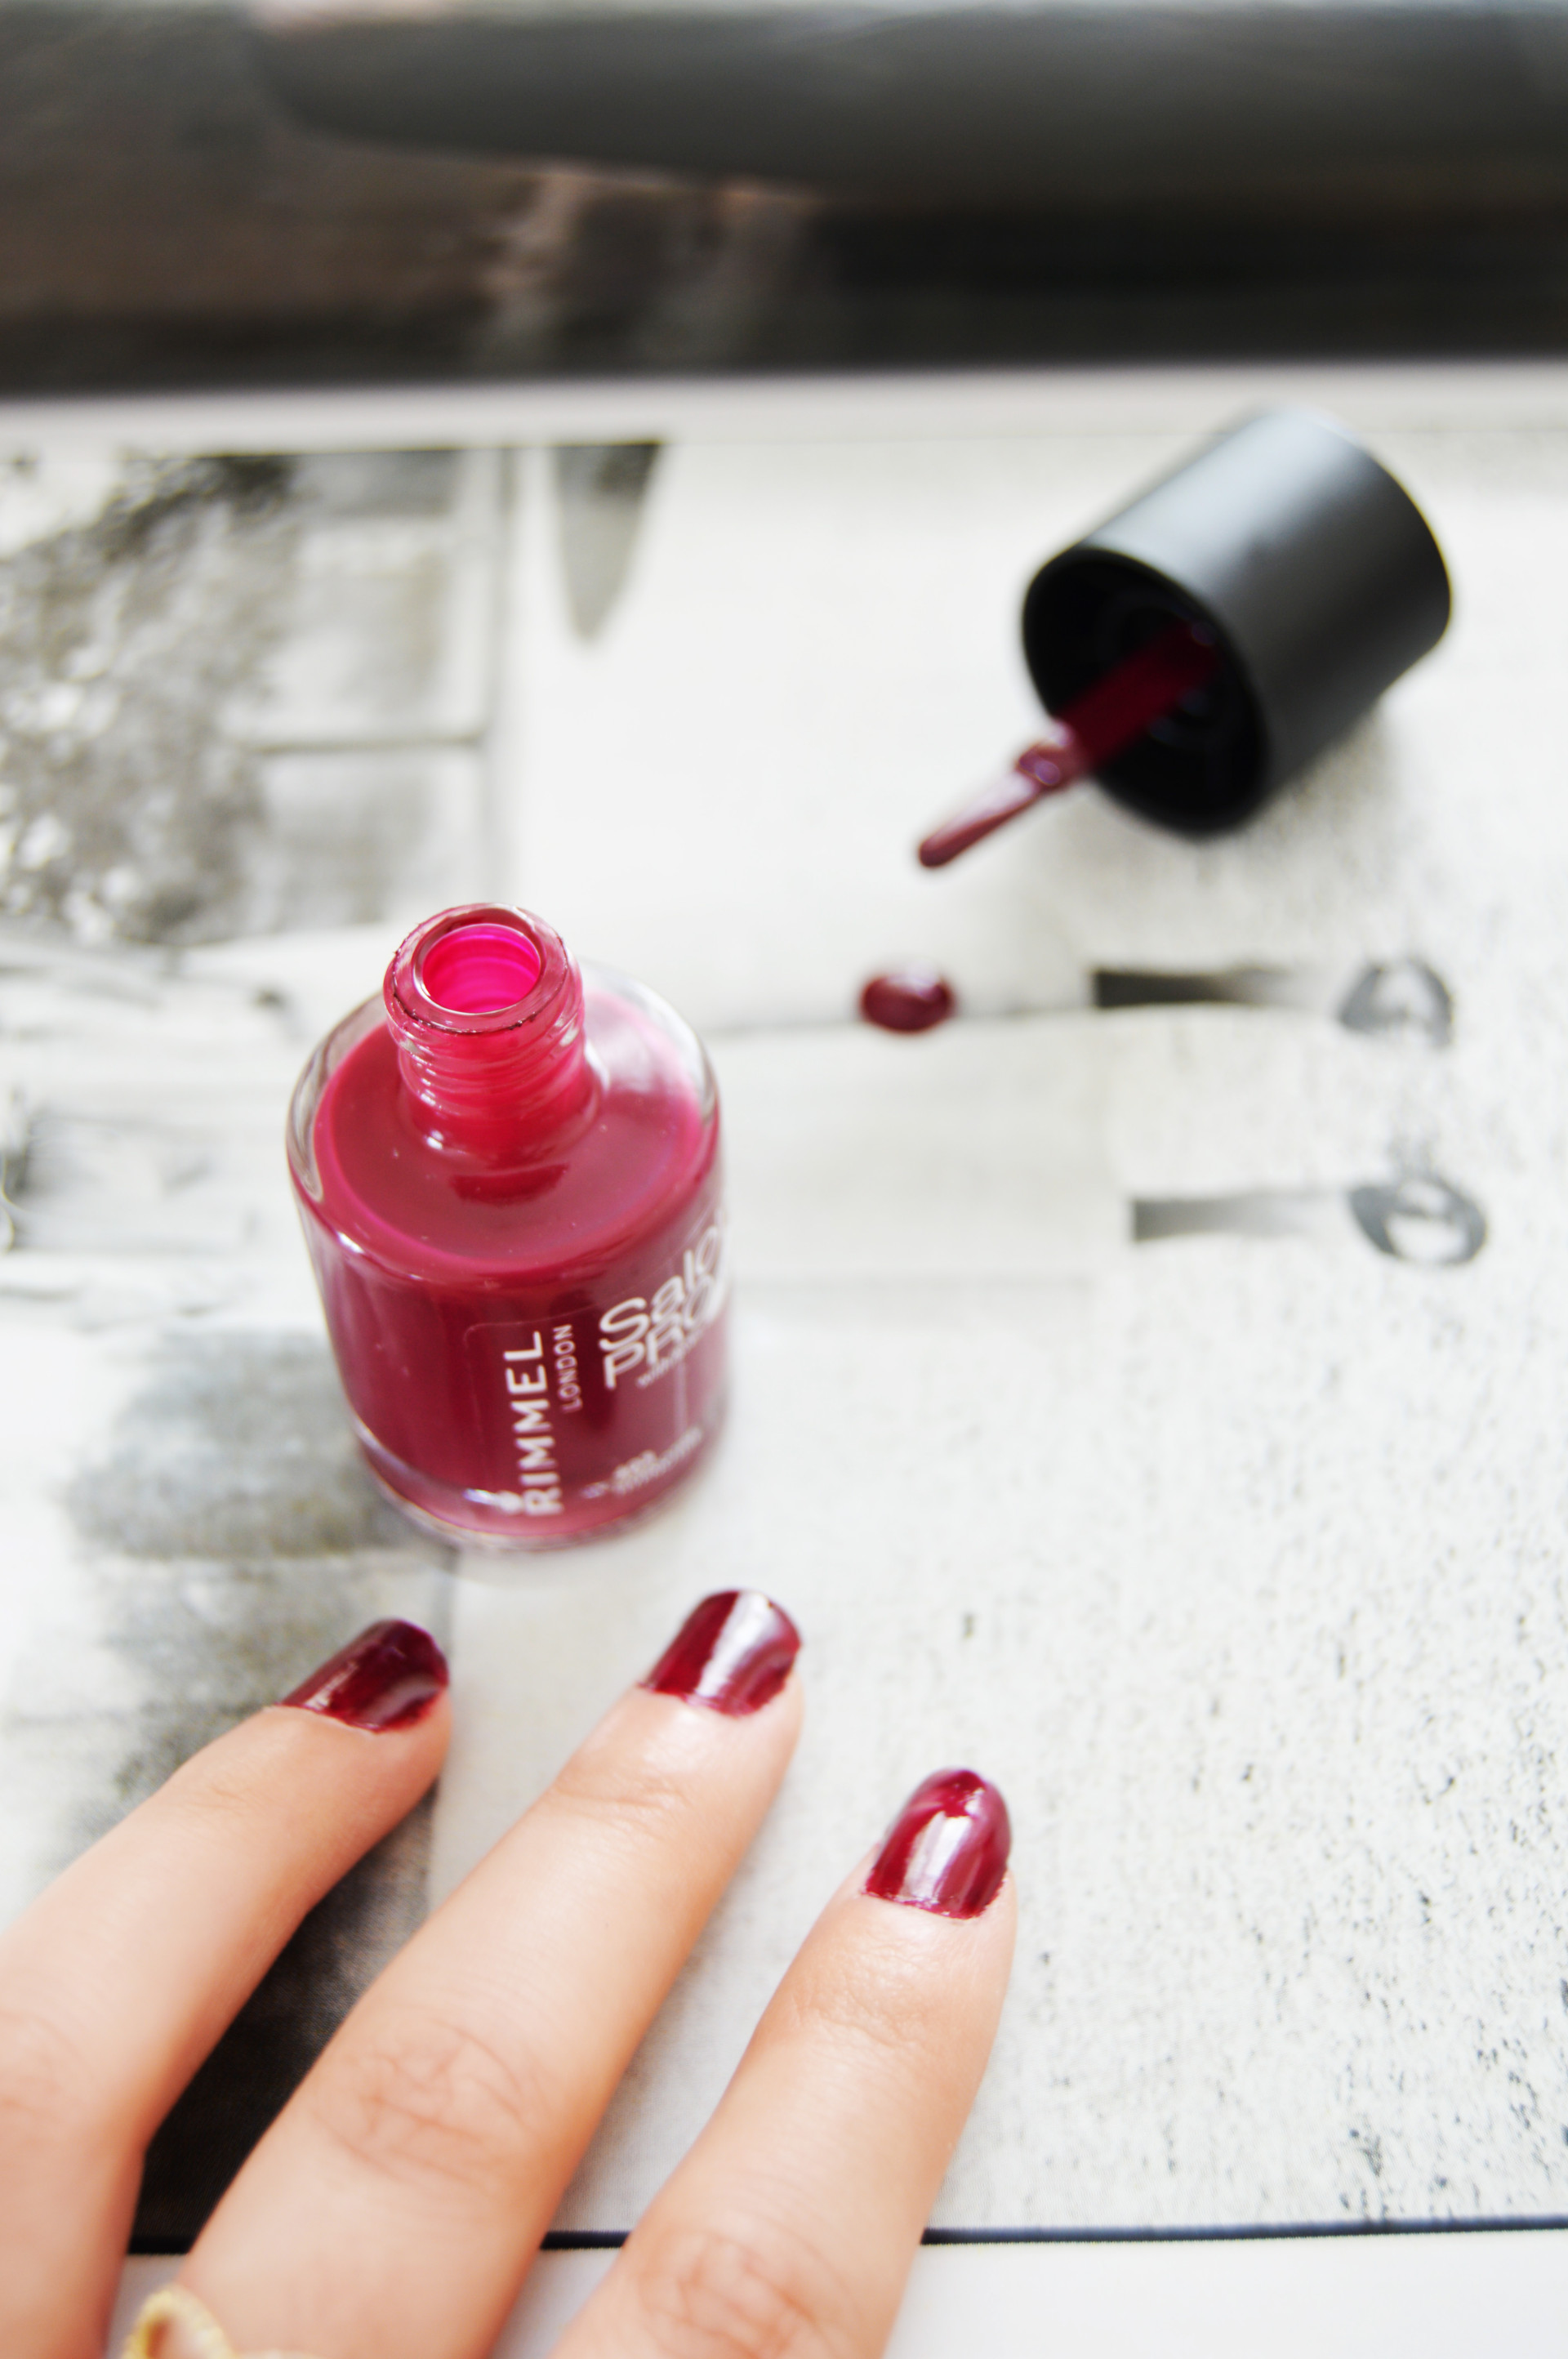 Berry Nails with Rimmel Salon Pro Nail Polish | Berry nails are perfect for all around the year, especially for Autumn. Rimmel Salom Pro Nail Polish is a long lasting and highly pigmented nail polish.